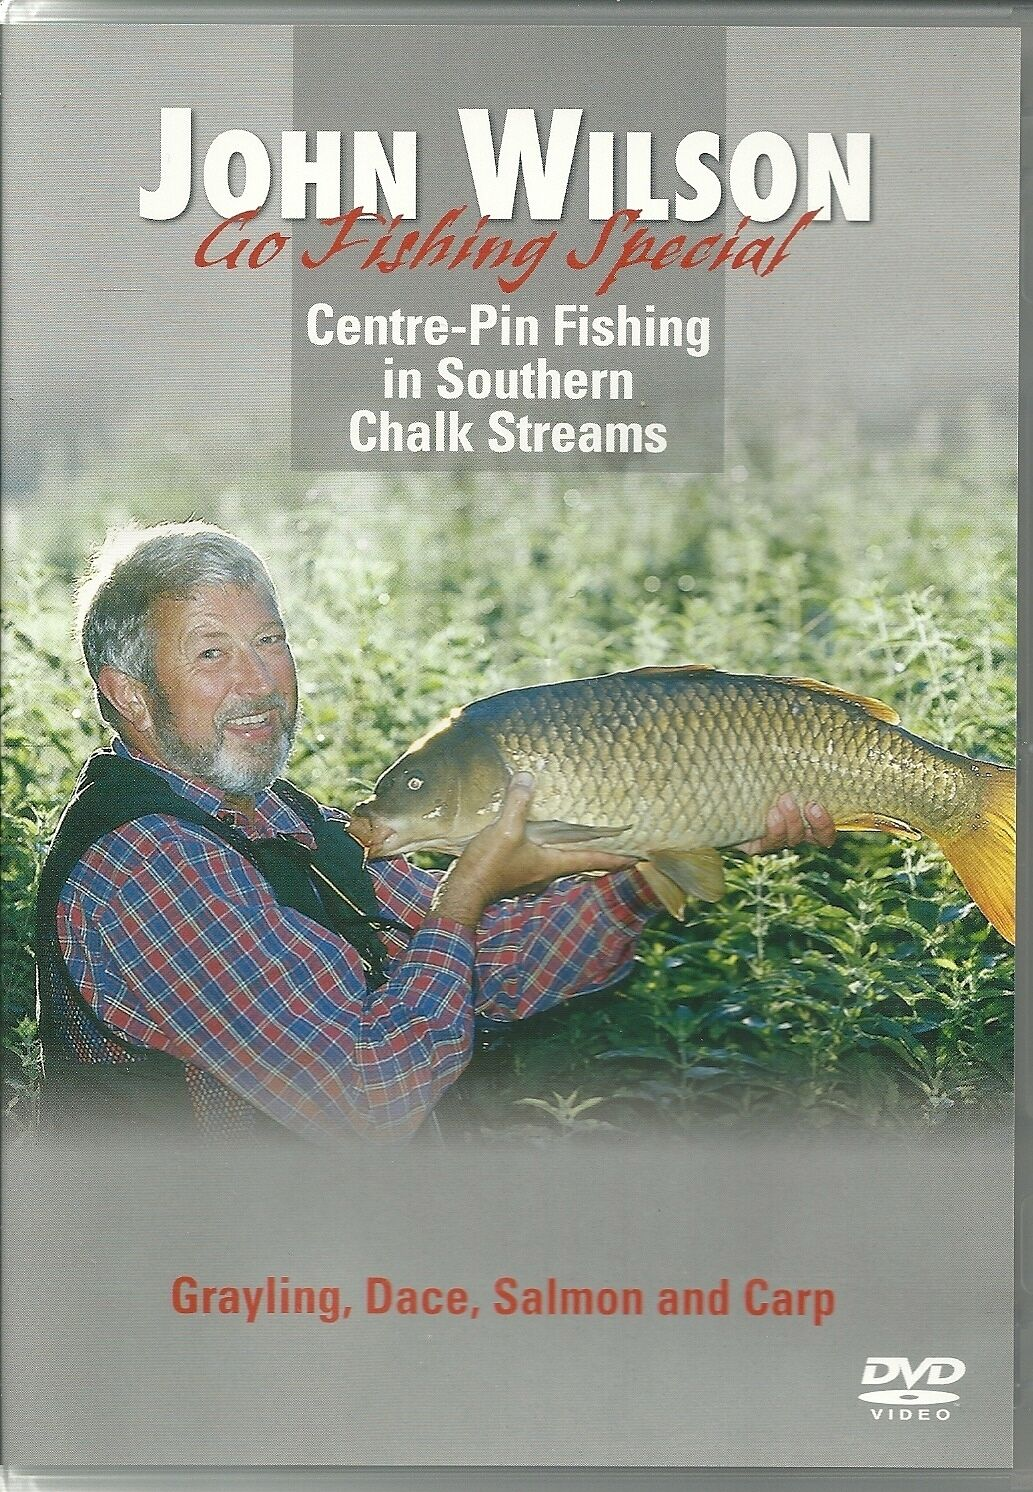 John Wilson Go Fishing Special DVD Centre Pin Southern Chalk Streams Salmon  Carp